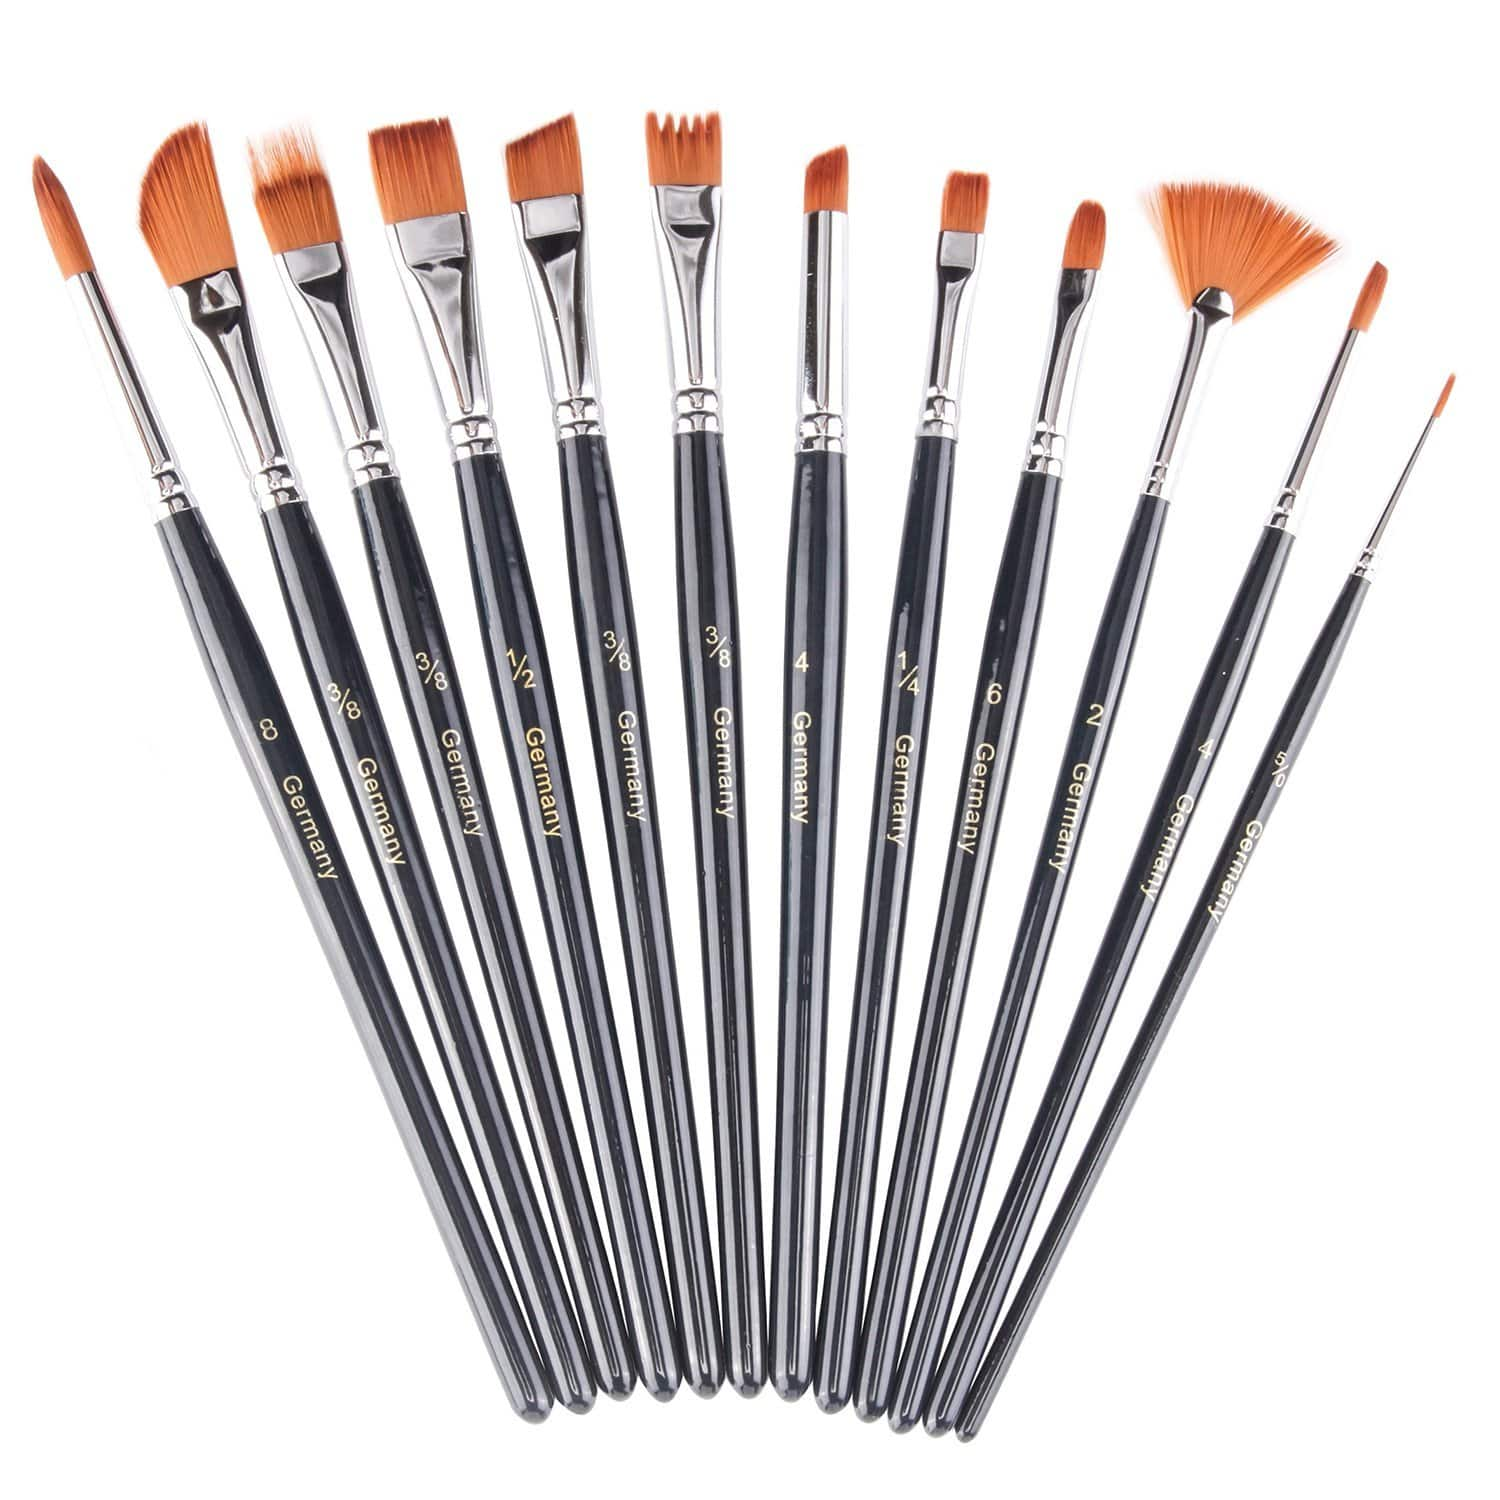 12 Pieces Set Of Nylon Hair Artist Acrylic Paint Brushes for ONLY $3.99